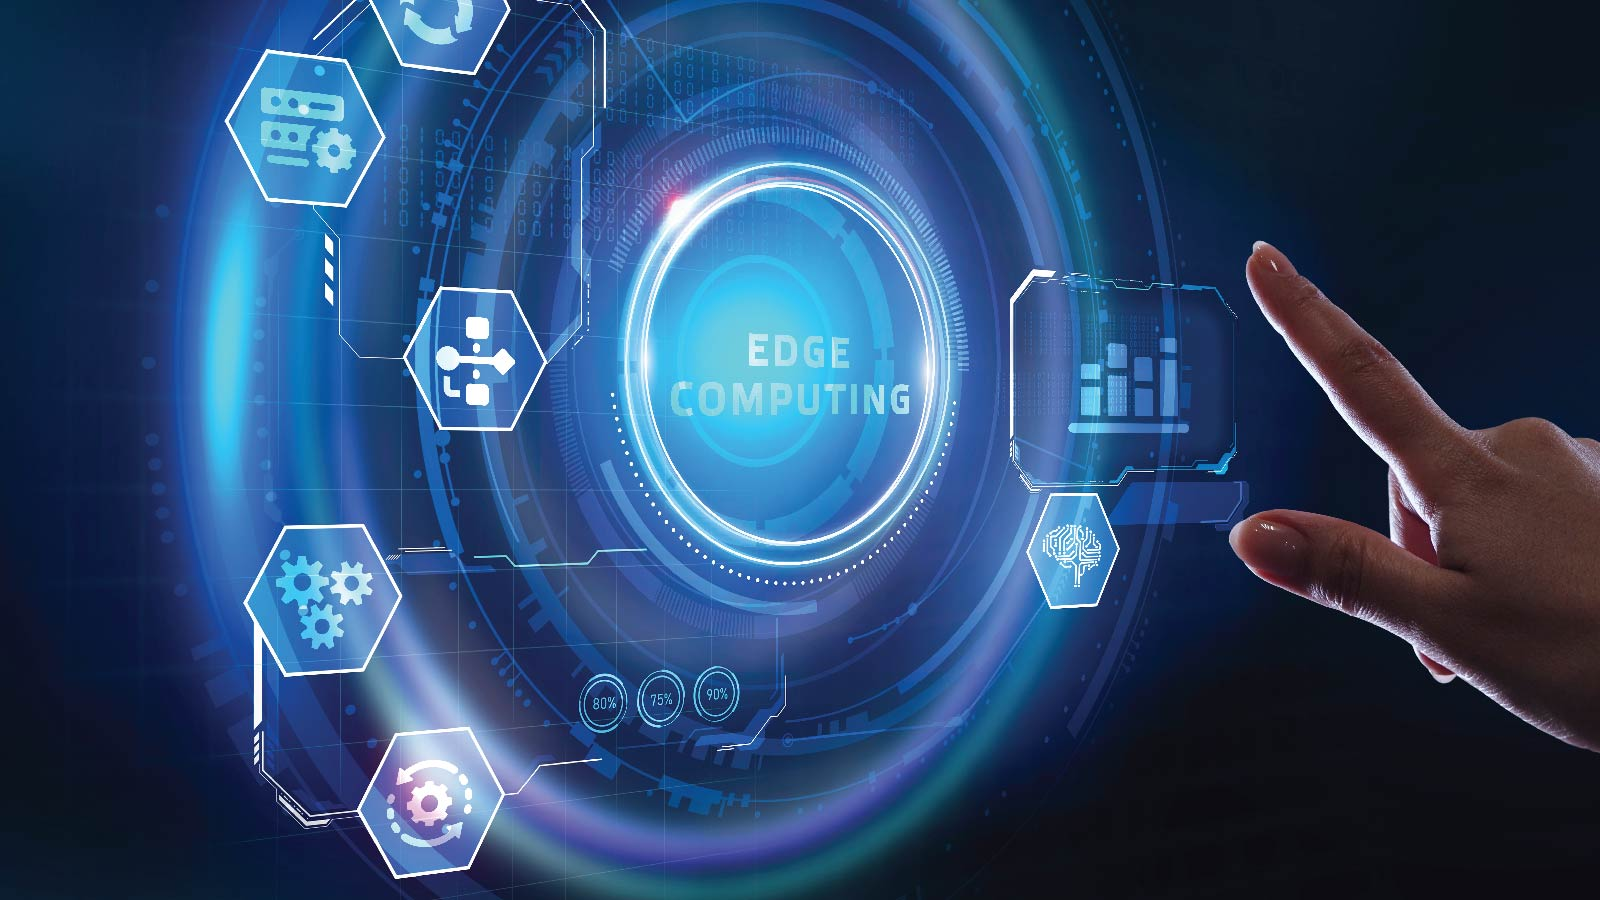 Edge Computing to Revamp the Businesses Environment In 2021